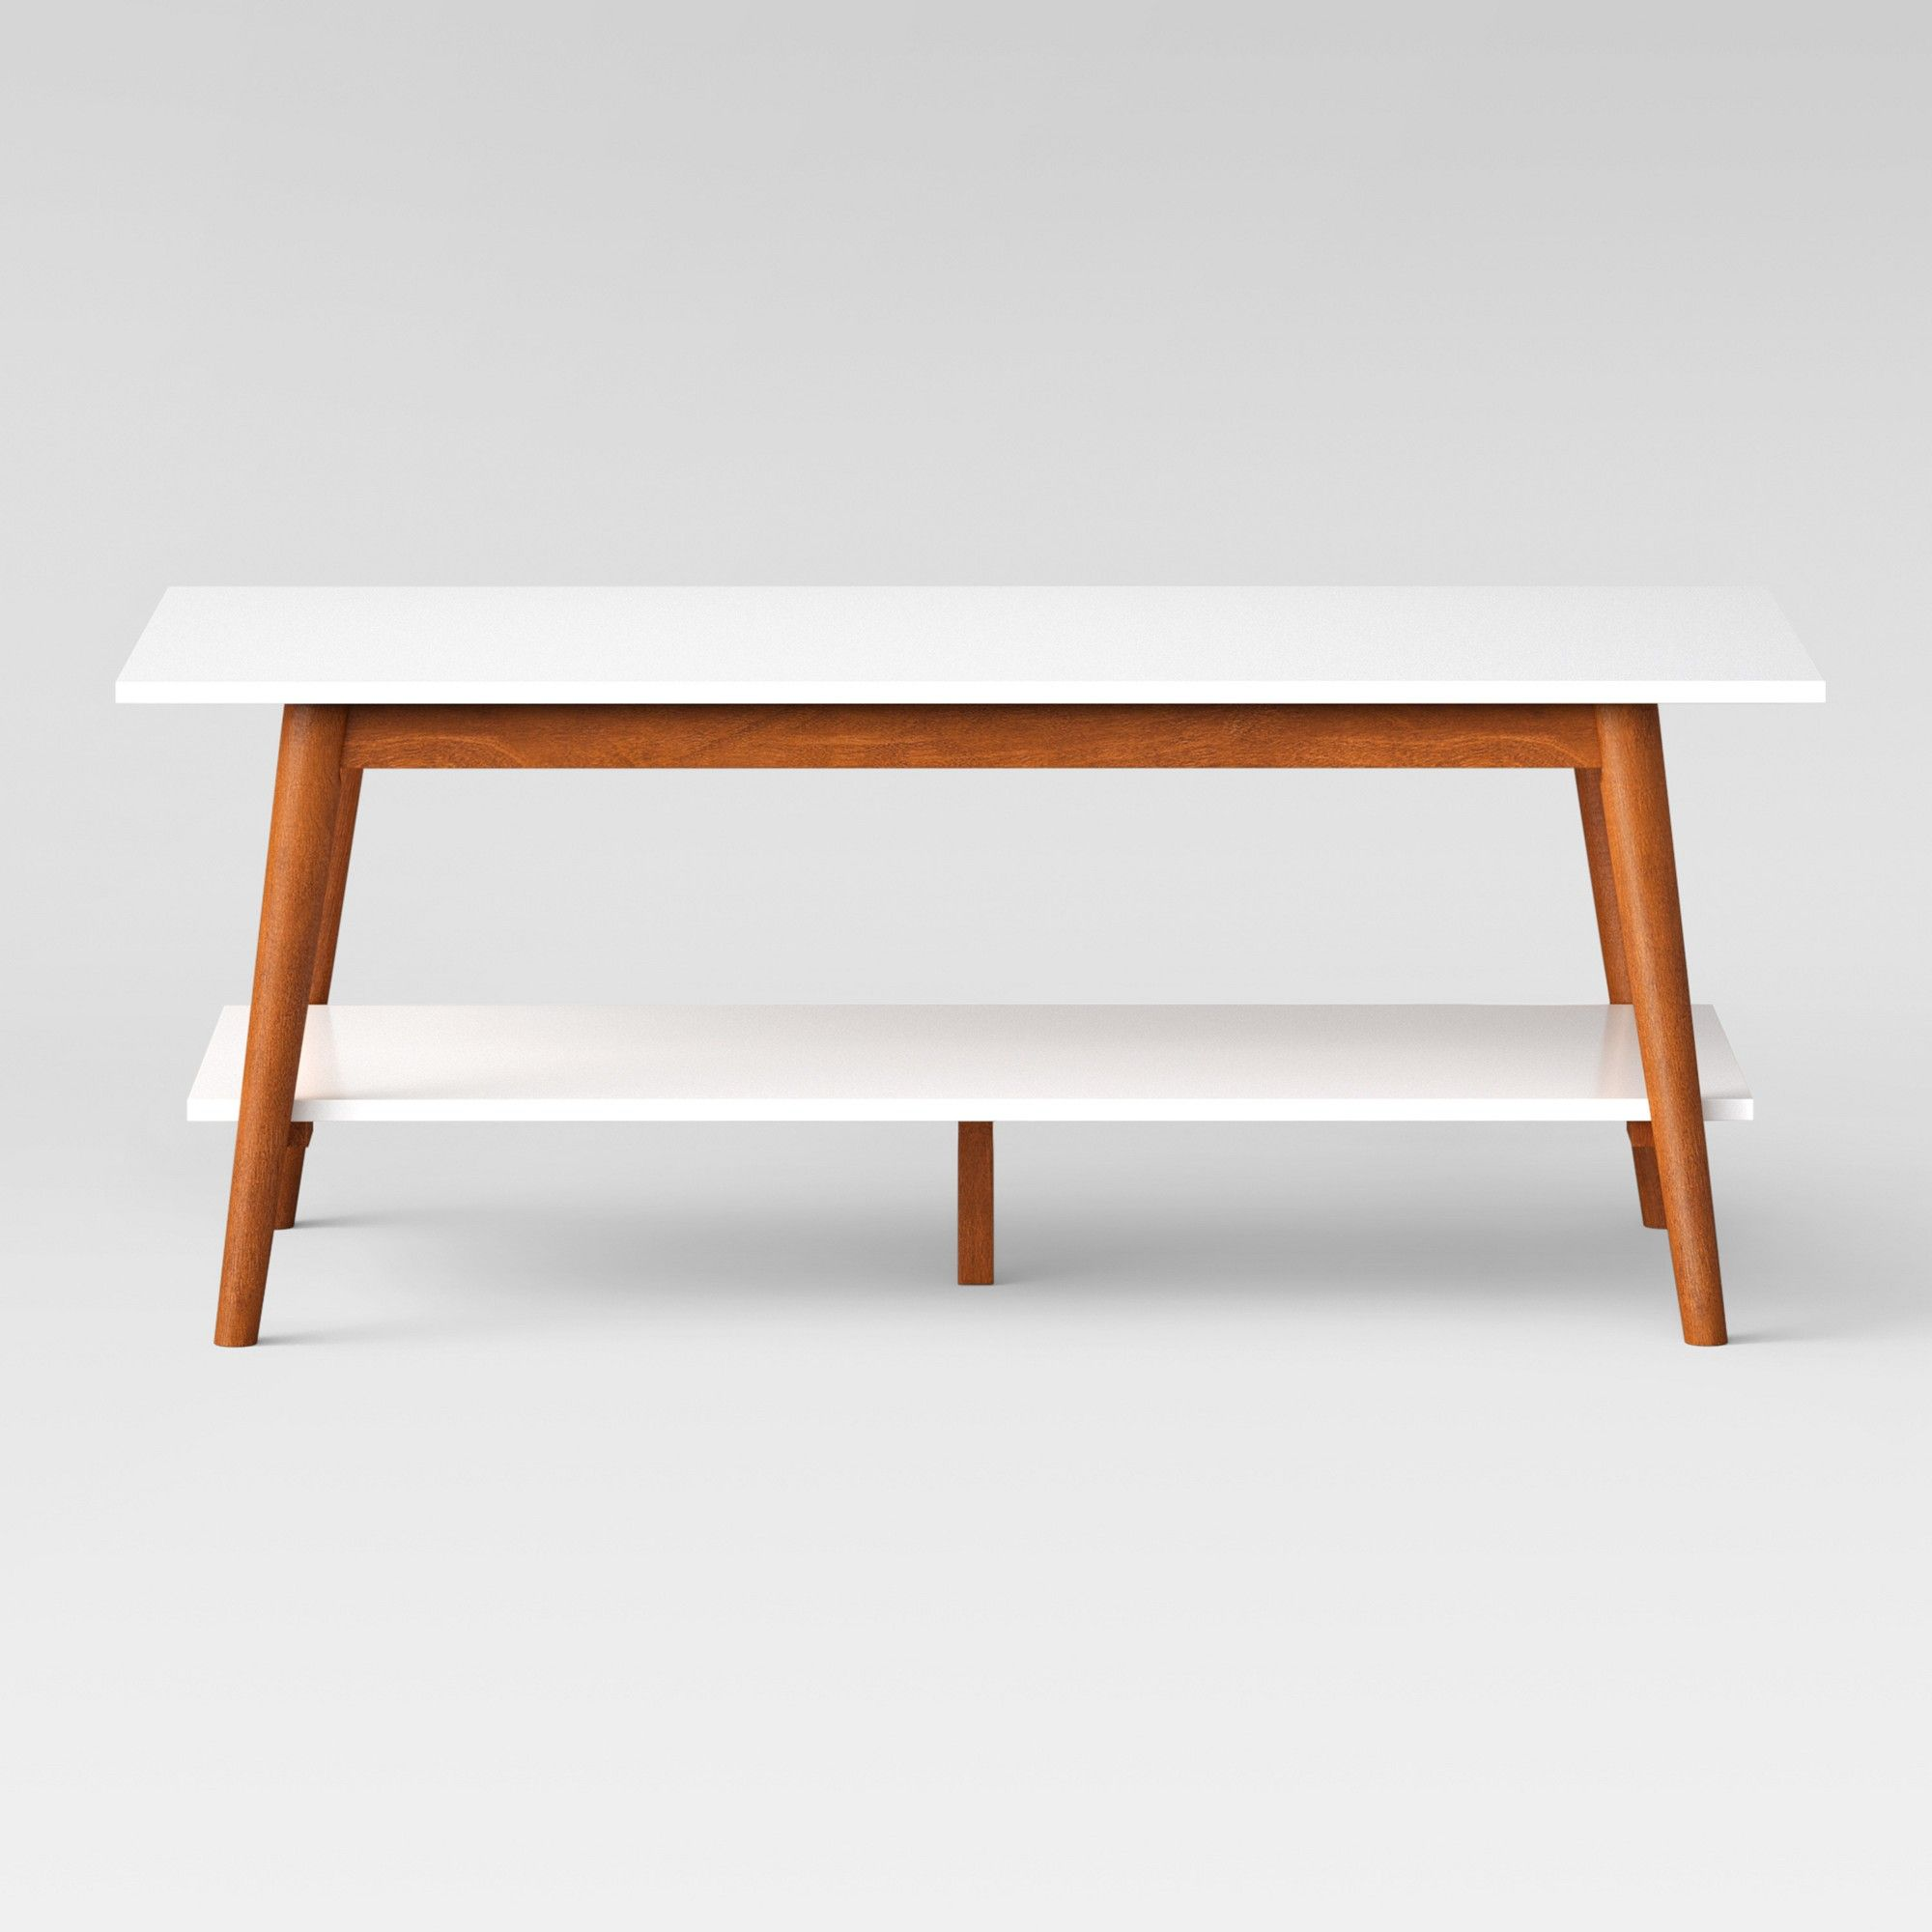 Amherst Mid Century Modern Two Tone Coffee Table White Brown Project Mid Century Modern Coffee Table Mid Century Modern Side Table White Coffee Table Modern [ 2000 x 2000 Pixel ]